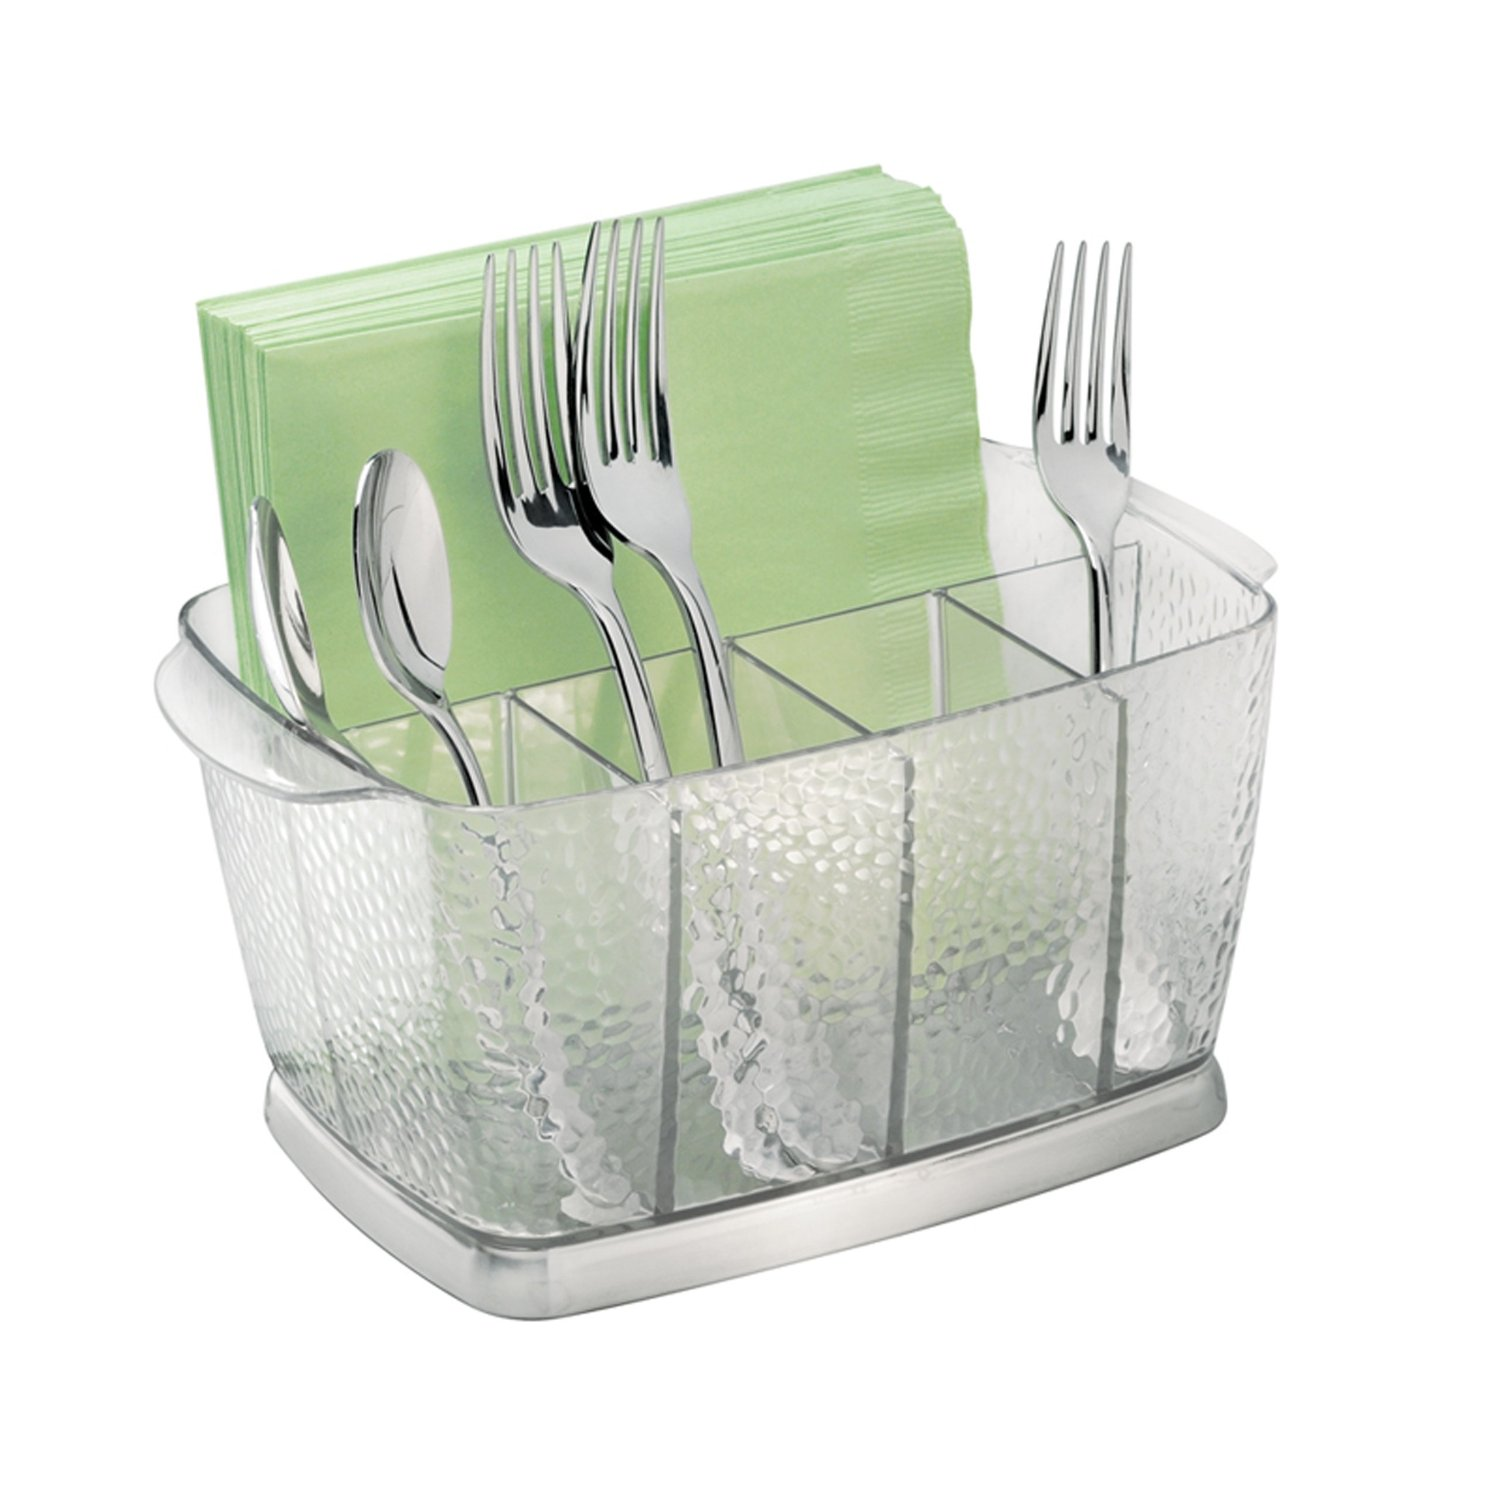 Charming Glass Utensil Caddy For Kitchen And Dining Table Accessories Ideas